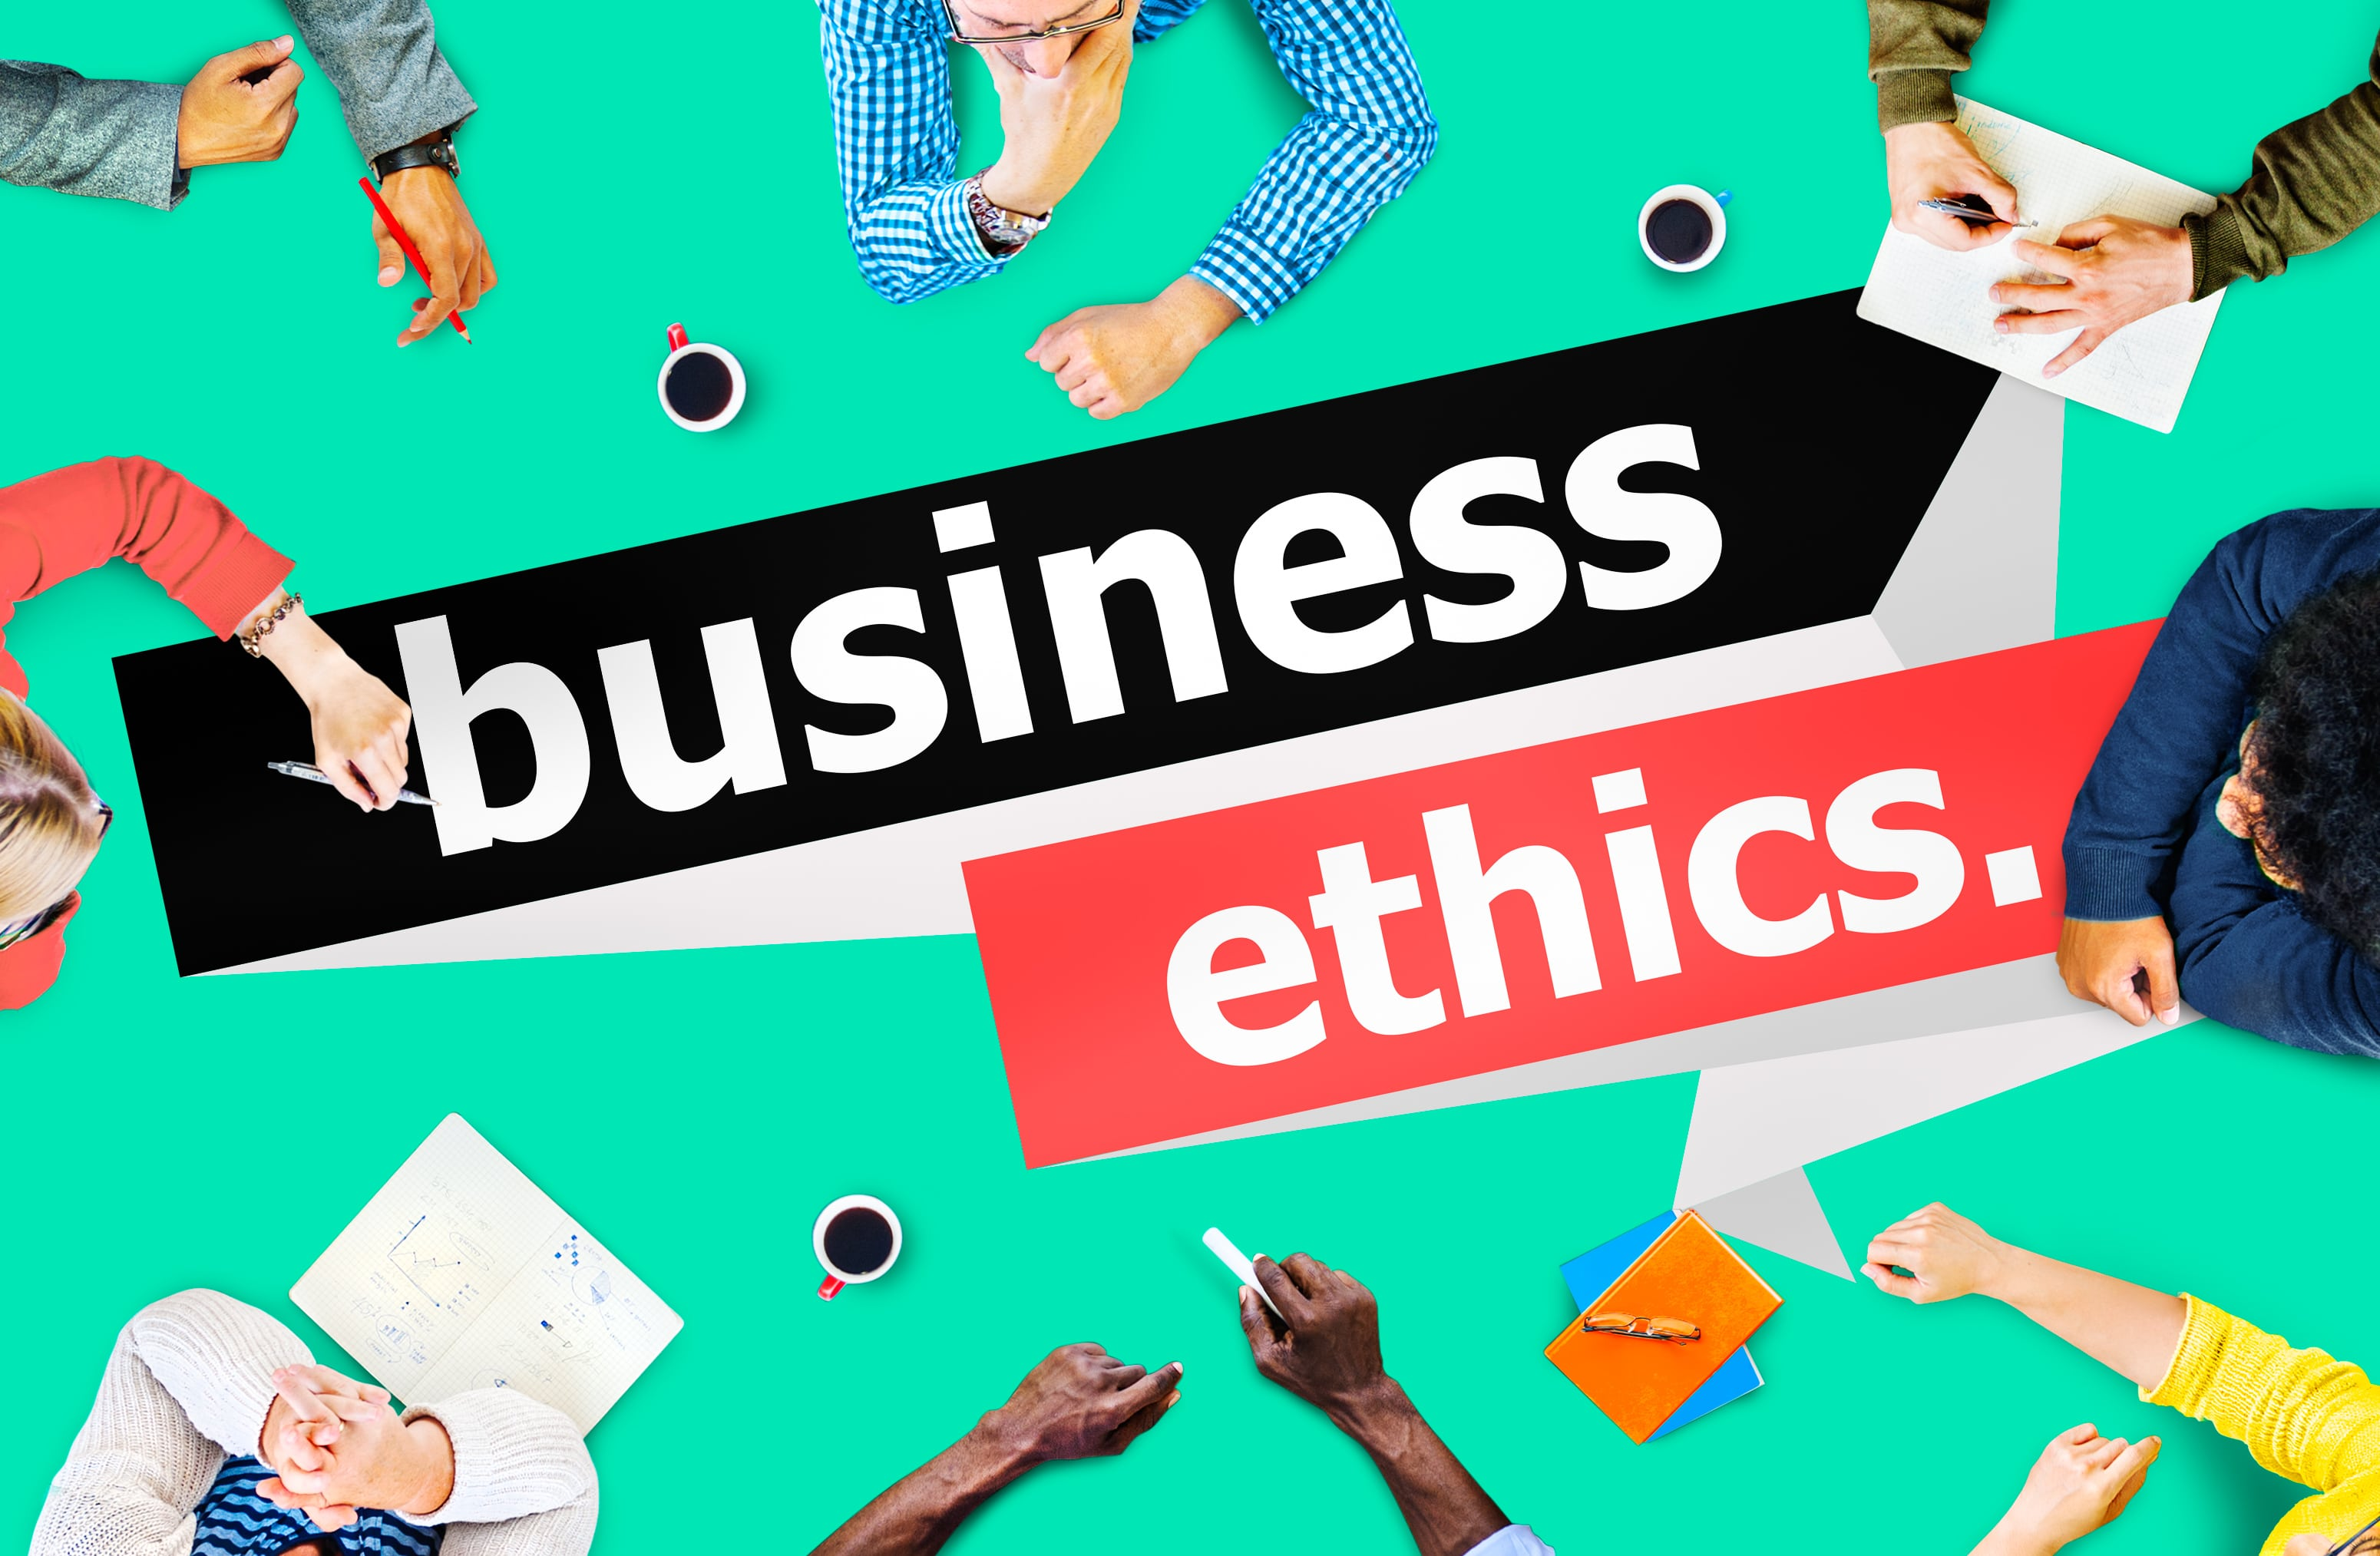 Top 10 Best Business Ethics Books Of All Time